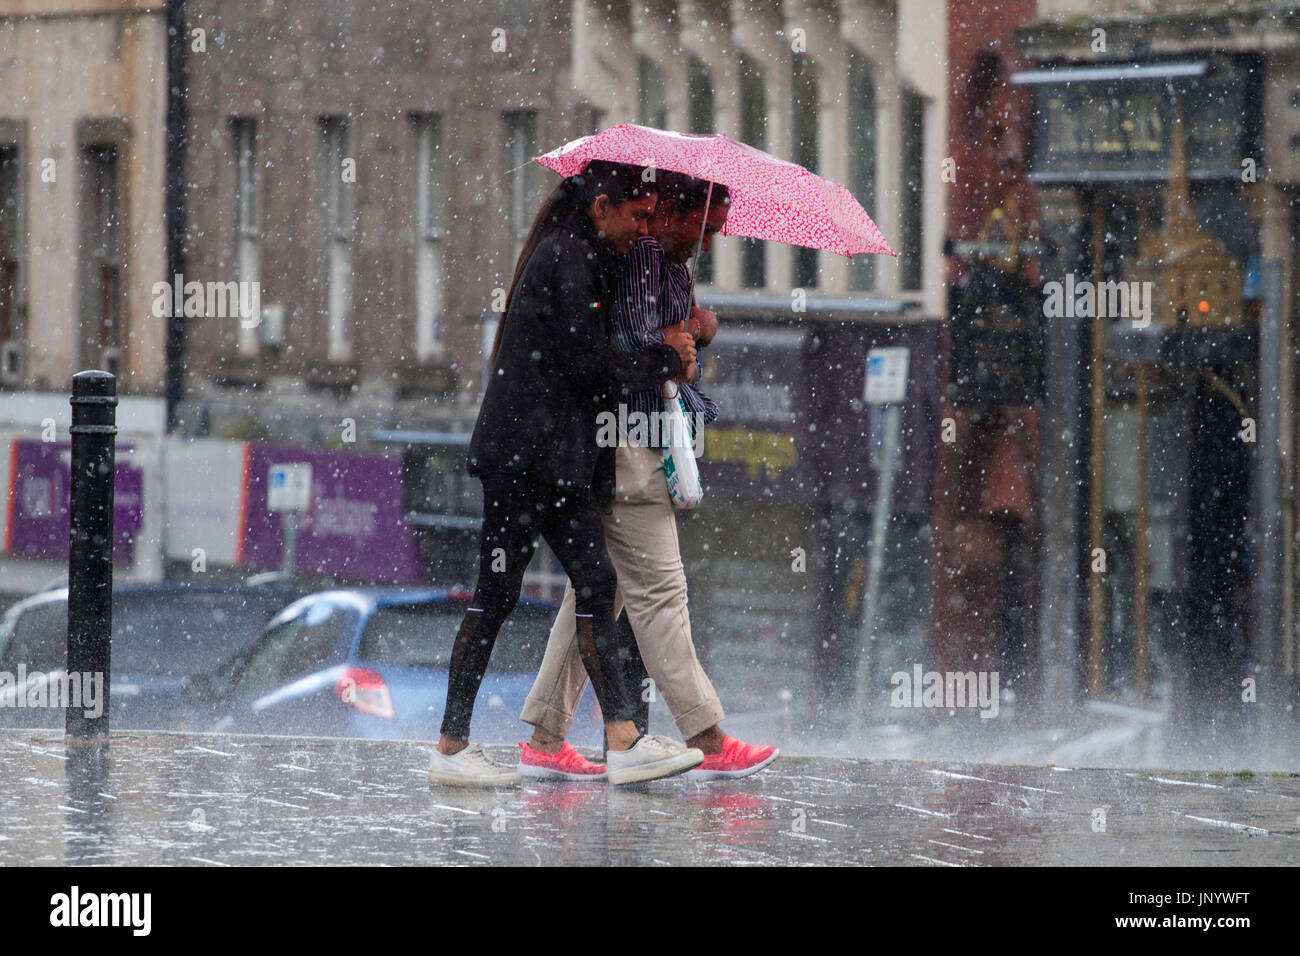 Dundee, Tayside, Scotland. 31st July, 2017. UK Weather: Torrential heavy downpours of rain soak shoppers in Dundee City Centre. The unsettled weather across Tayside caught shoppers by surprise with heavy outbursts of rain during the day. Some were prepared but others use alternative ways to shelter. Credit: Dundee Photographics /Alamy Live News Stock Photo